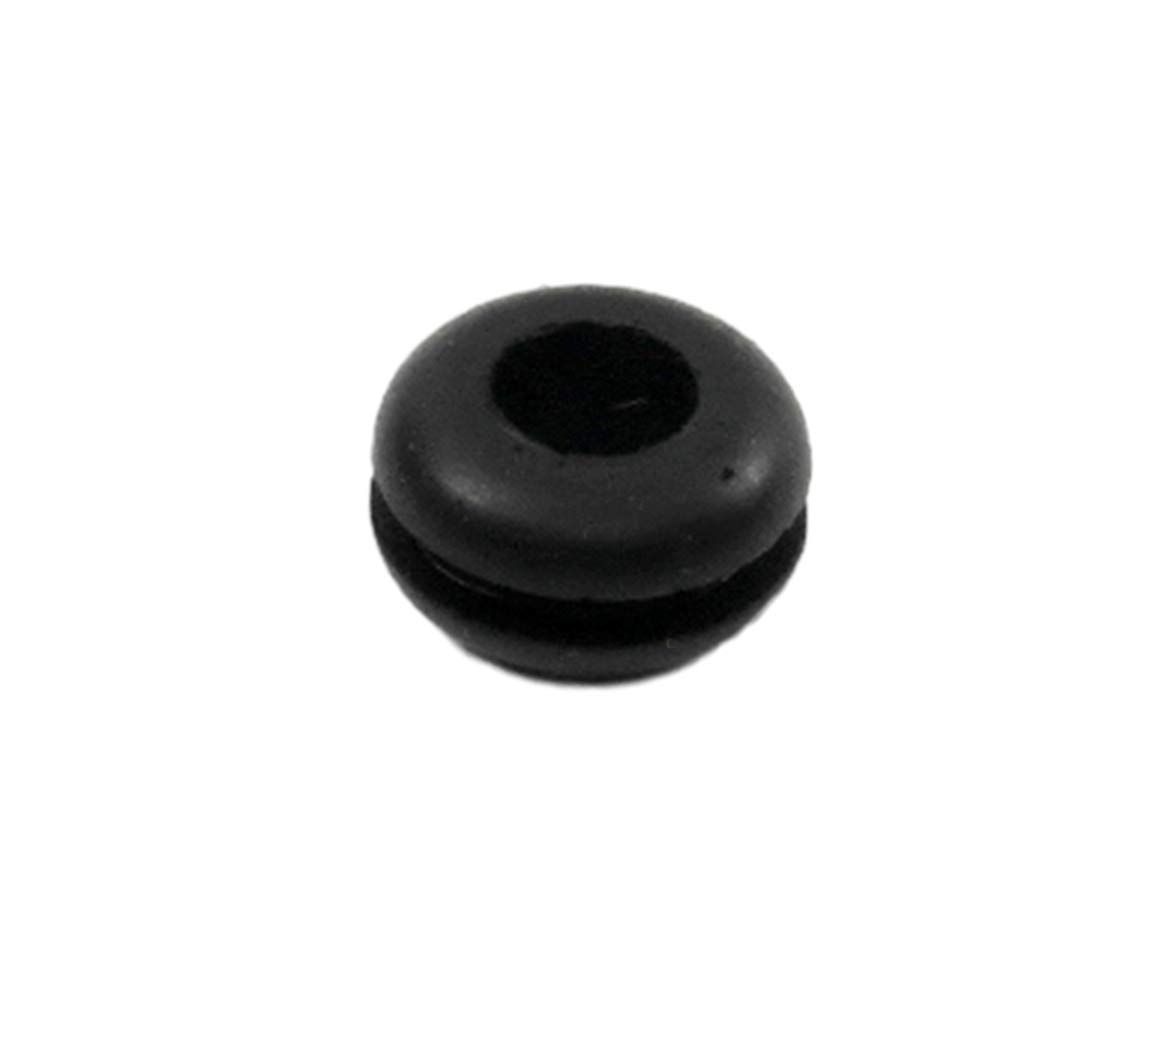 Small Rubber Grommet Fits 5/16'' Hole in 1/16'' Thick Panel - 3/16'' Inner Hole - Durable Grommet - Protects Wires and Tubing - Reduces Vibration (6)